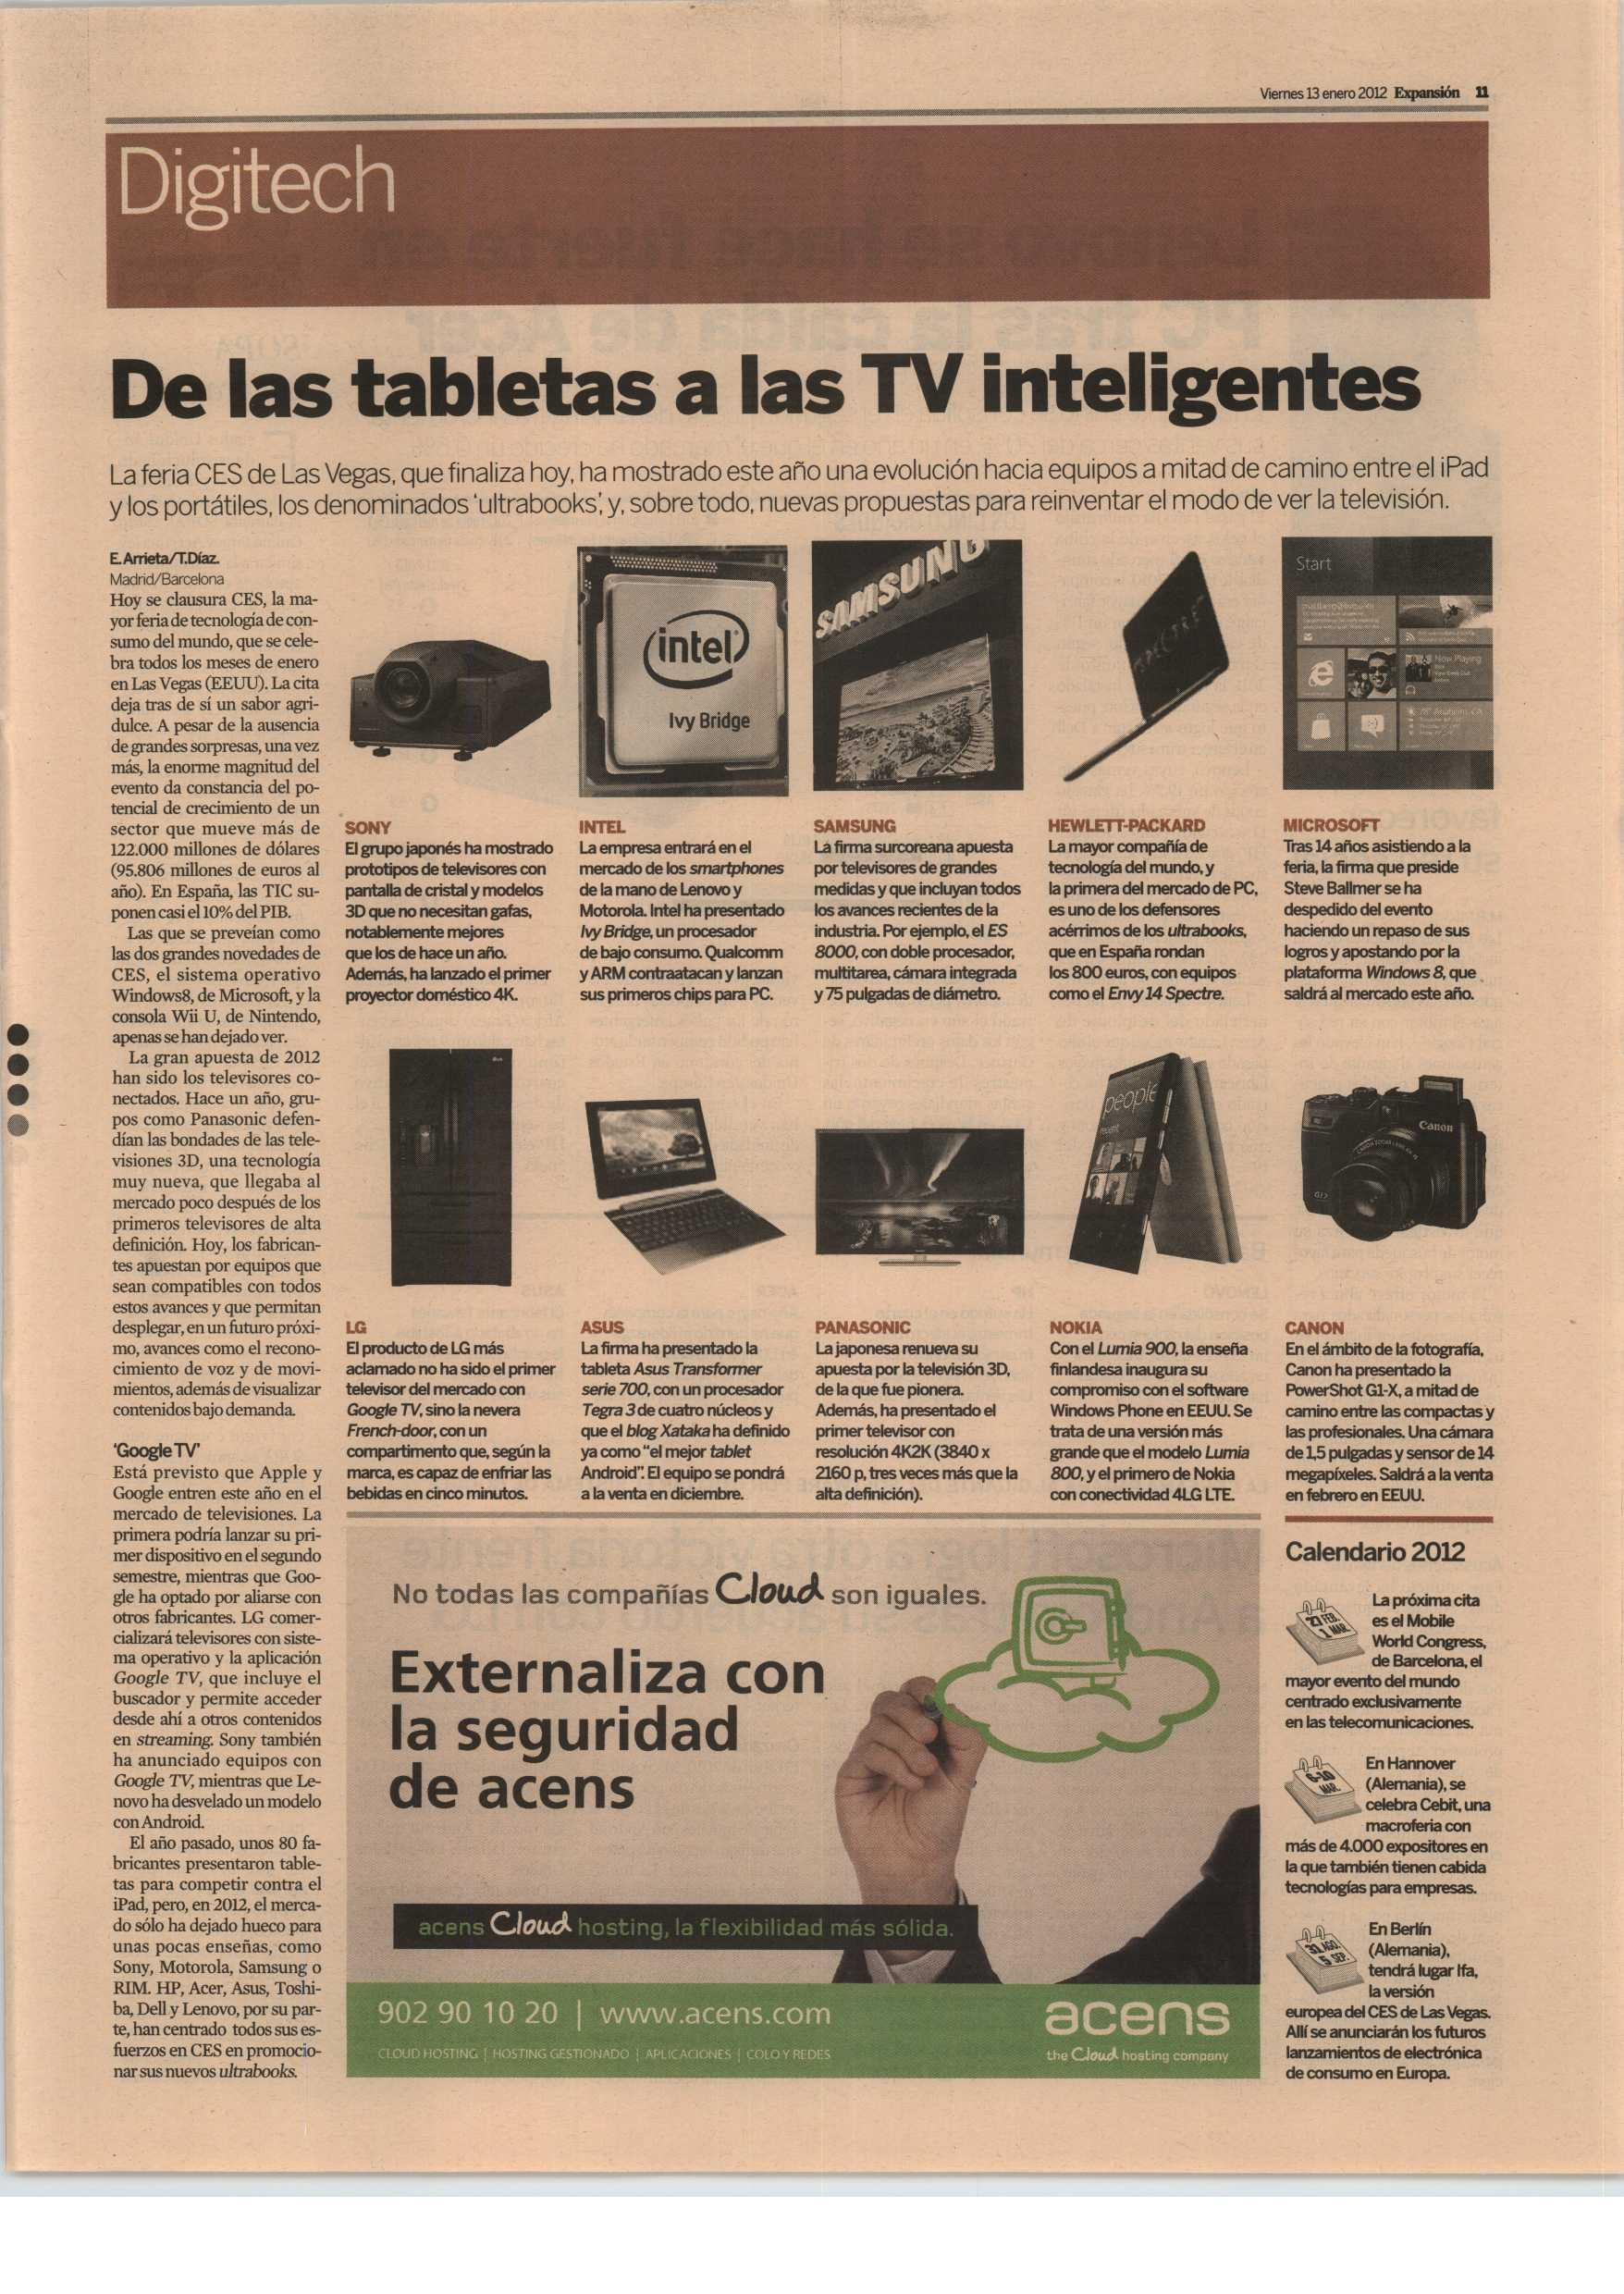 noticia digitech televisiones inteligentes - blog acens the cloud hosting company